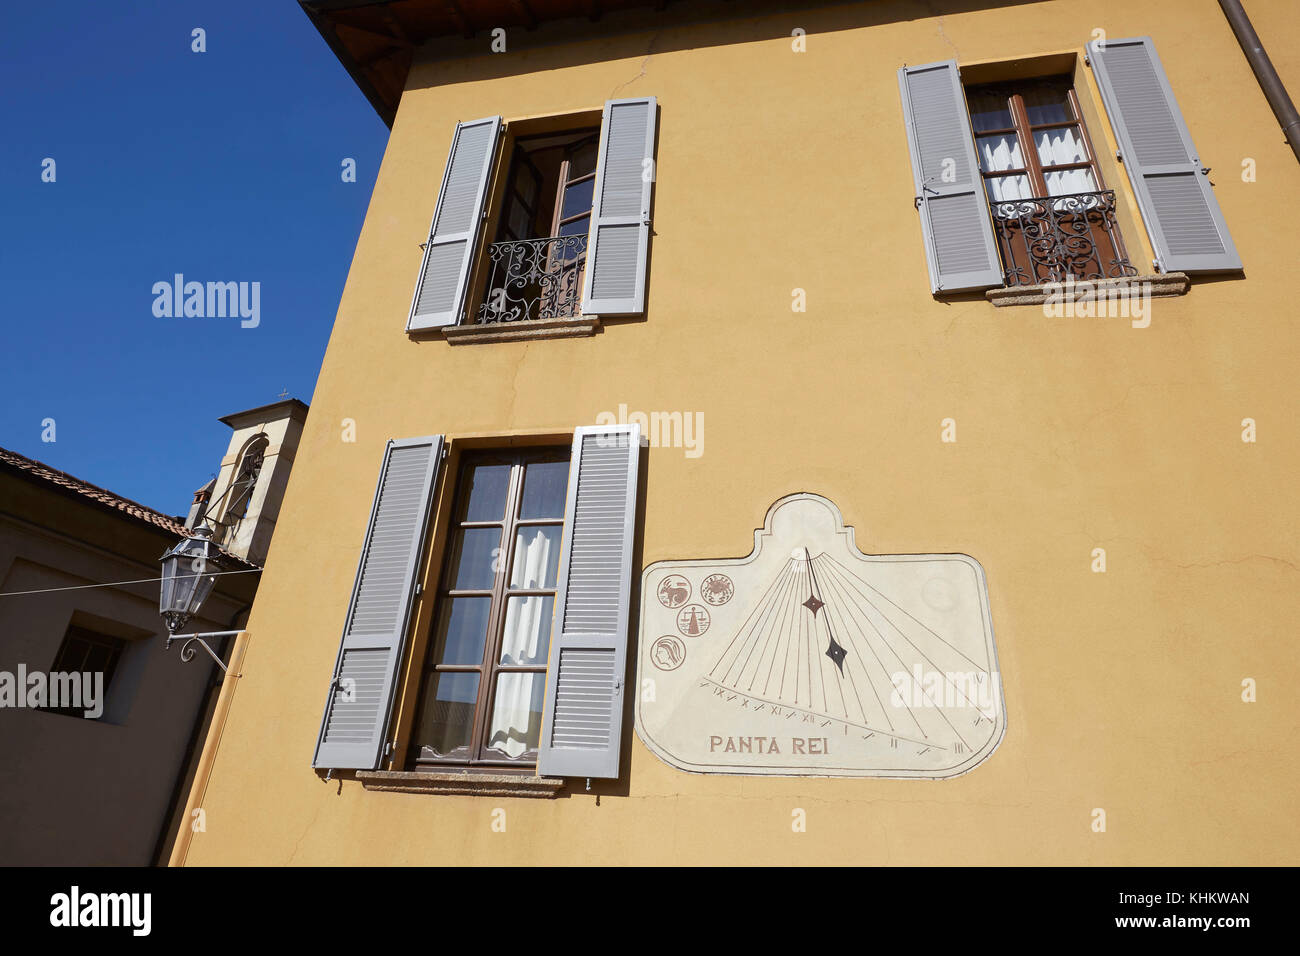 Sun dial and shutters on a villa, Varenna, Lake (Lago) Como, Lecco Lombardy, Italy. - Stock Image